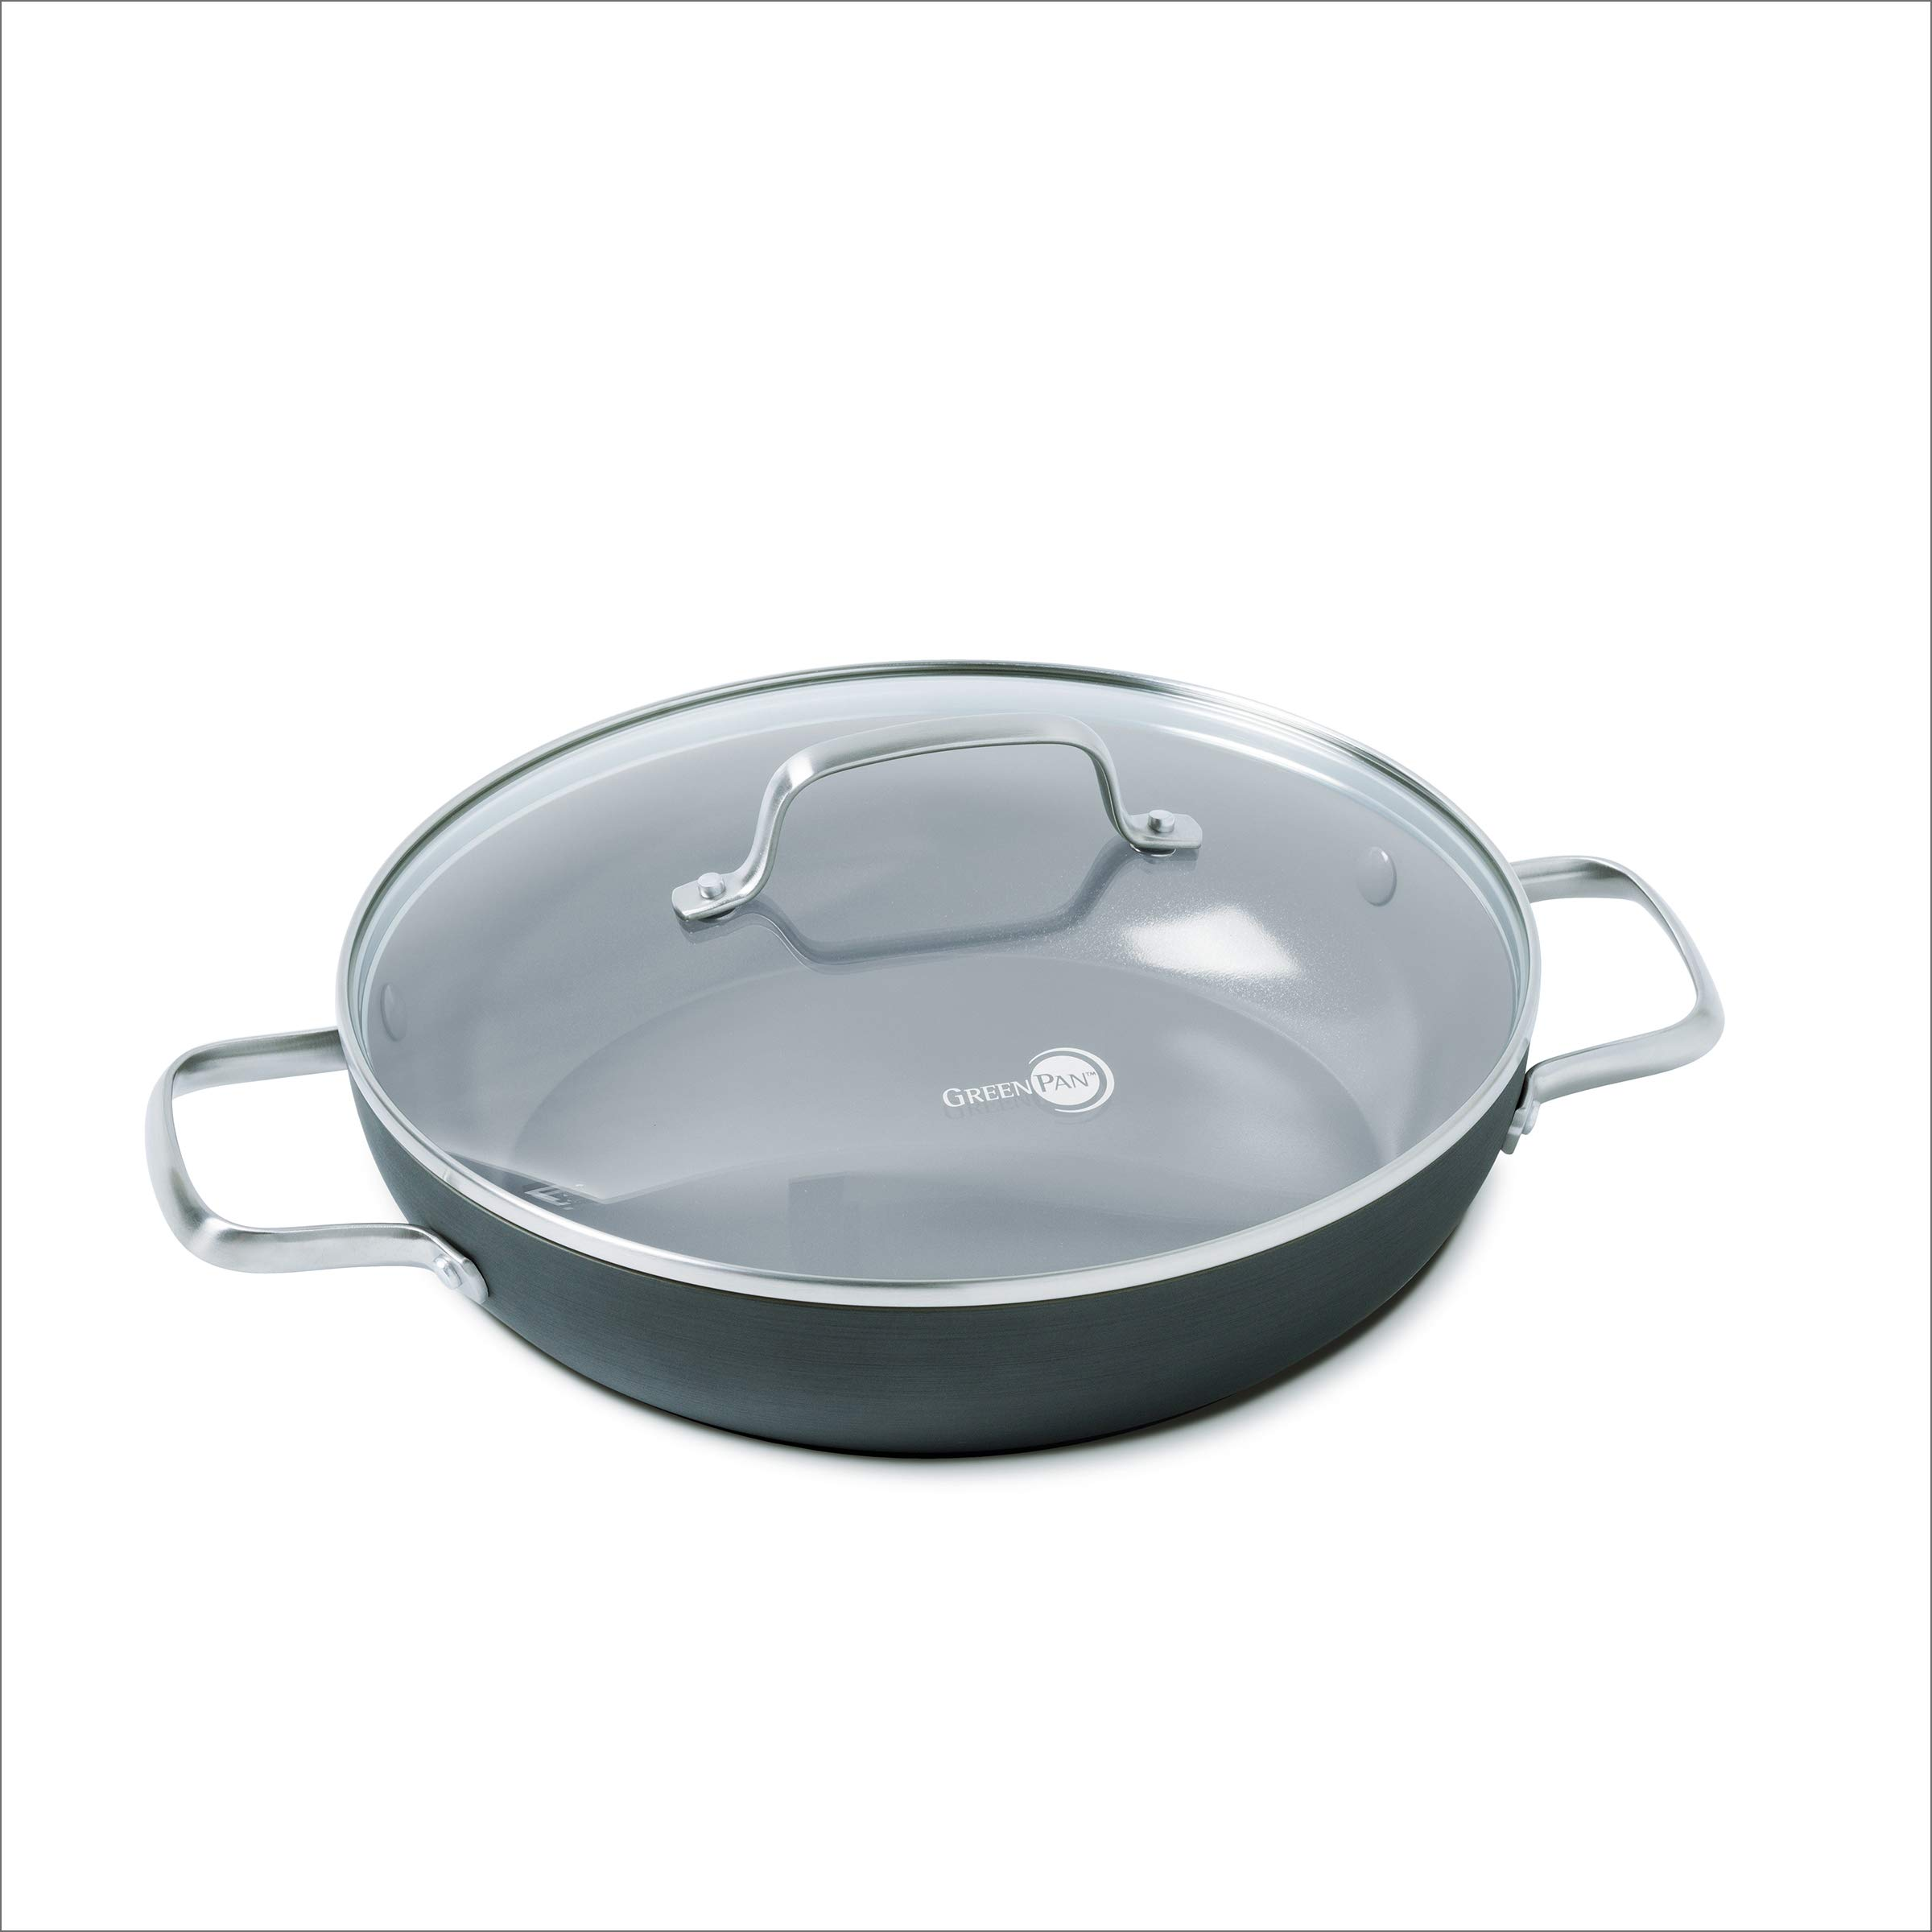 GreenPan Chatham 11'' ceramic Non-Stick Covered Everyday Pan with 2 Helpers, Grey by GreenPan